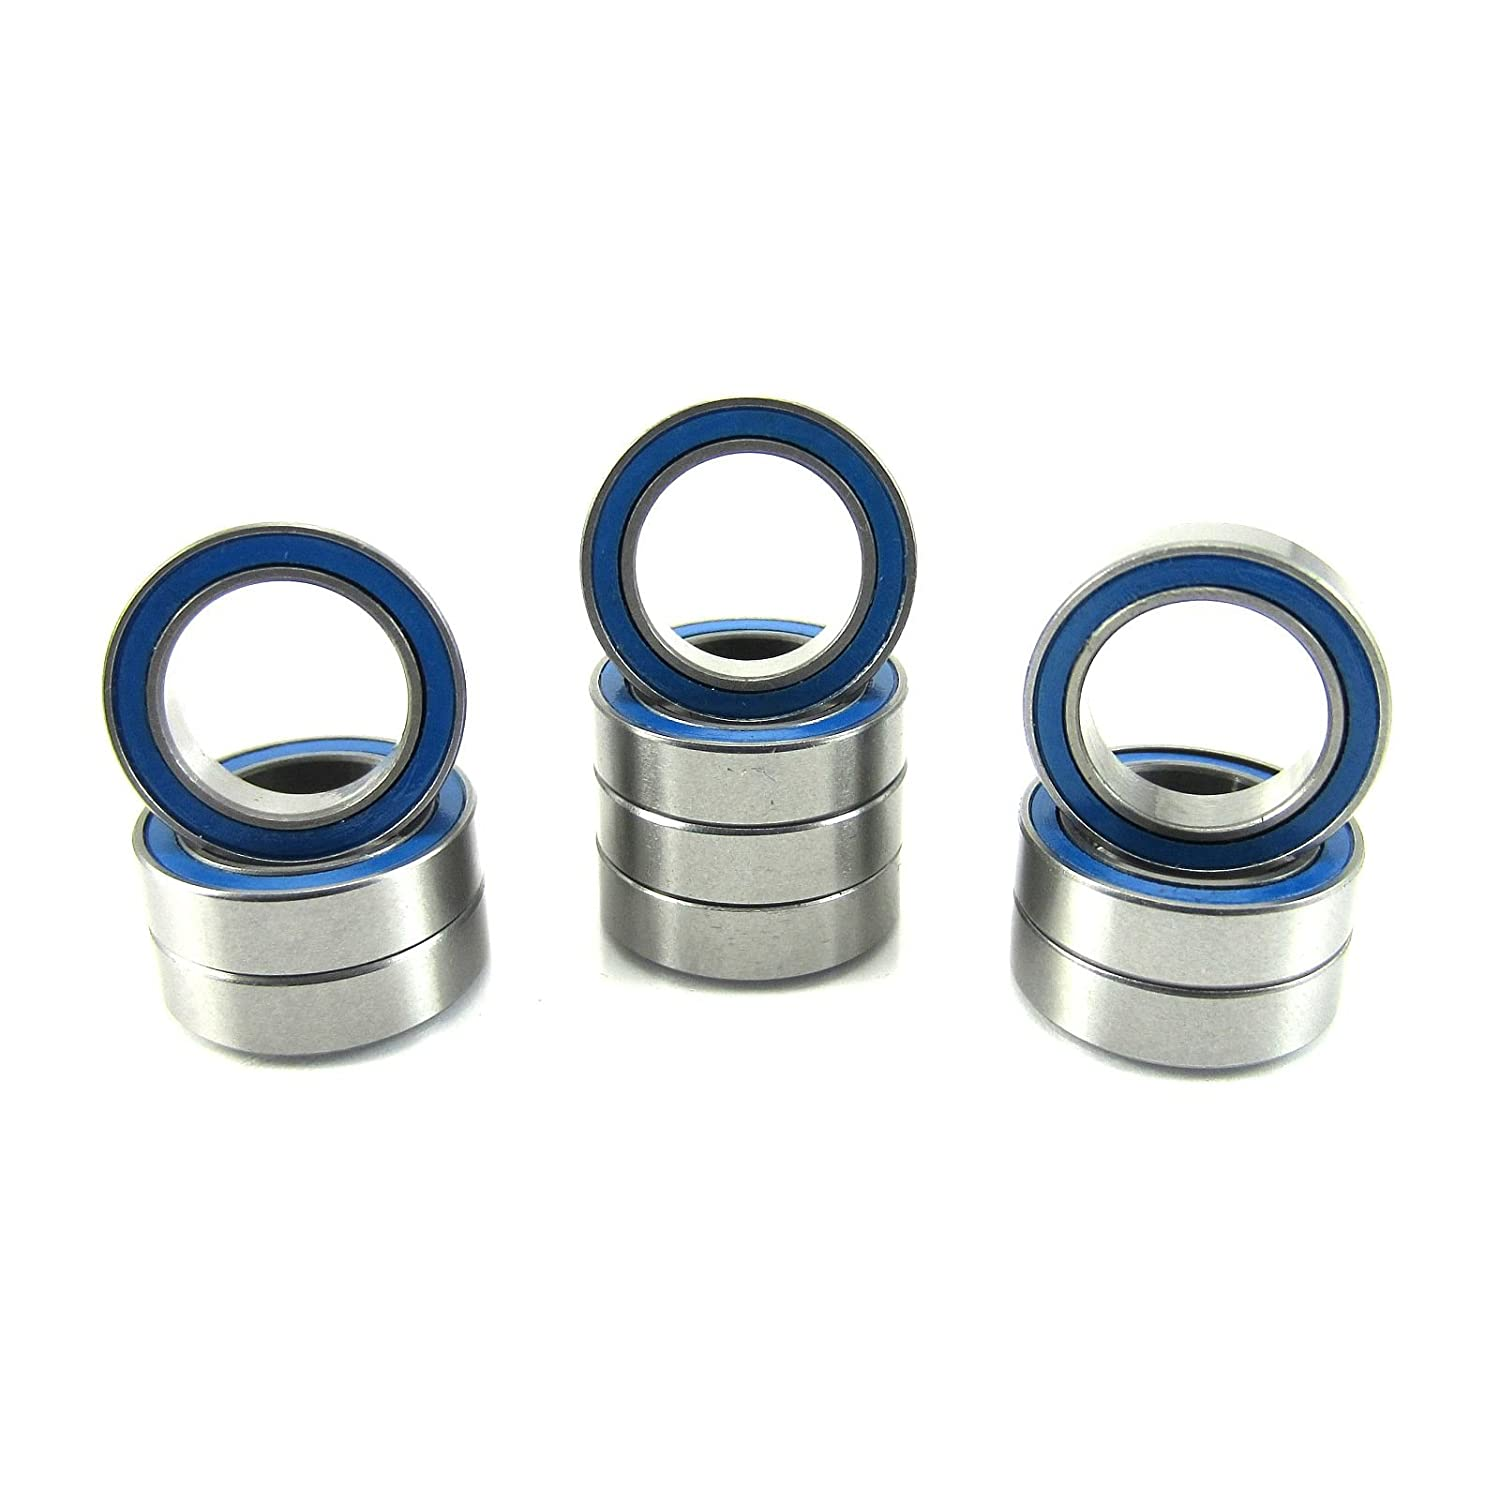 10x15x4mm Precision Ball Bearings ABEC 3 Rubber Seals (10) 6700-2RS-BU TRB RC